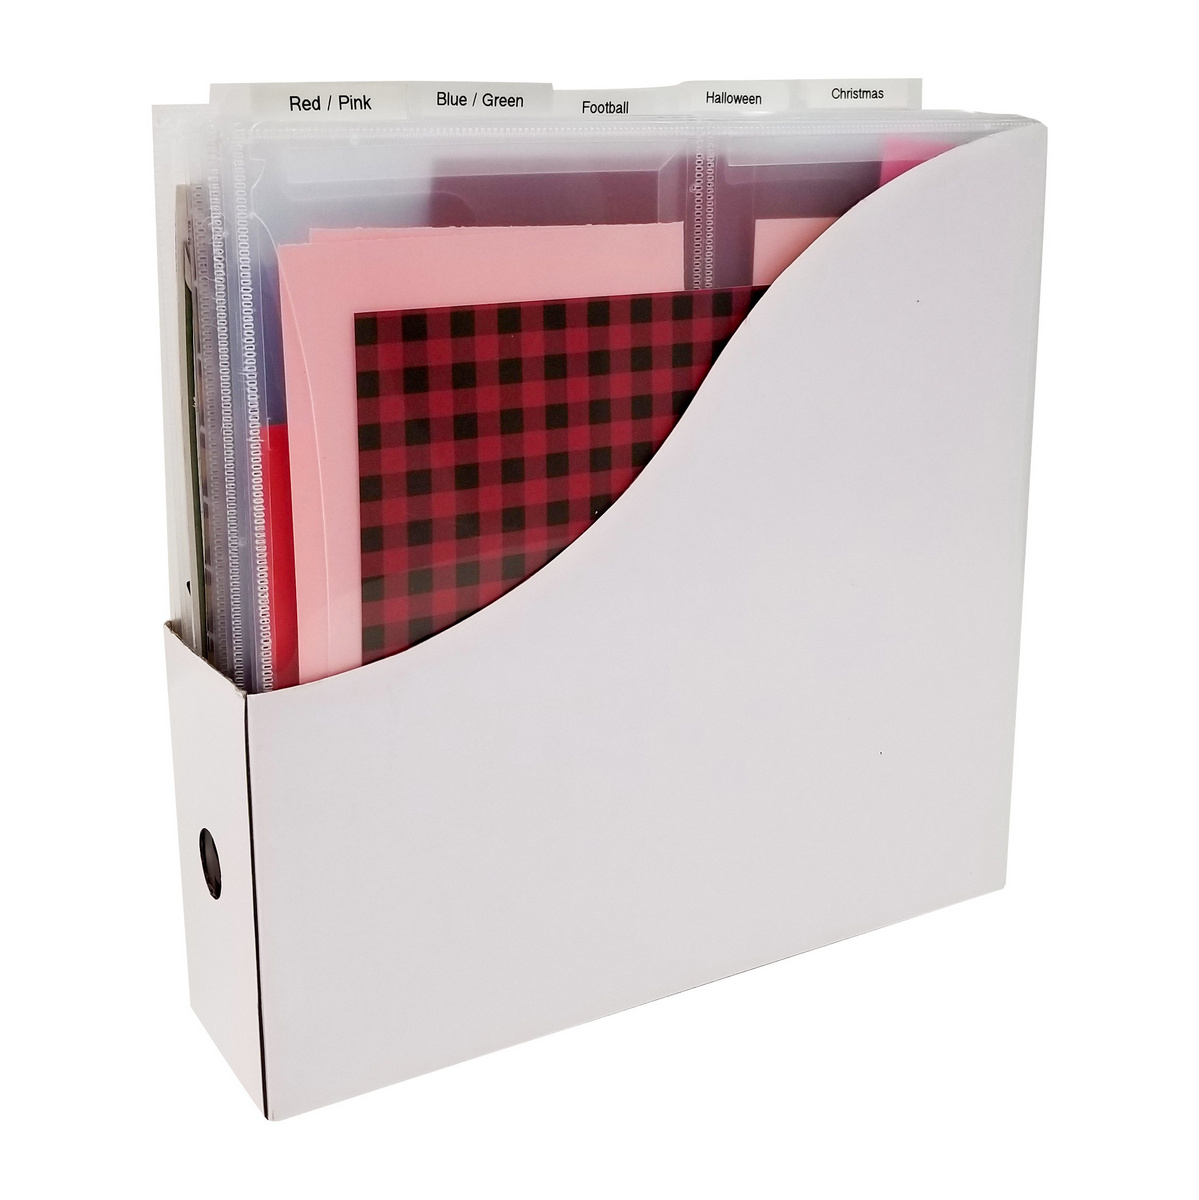 12x12 tabbed divider pockets or the ScrapMaster paper storage solution, Totally-Tiffany